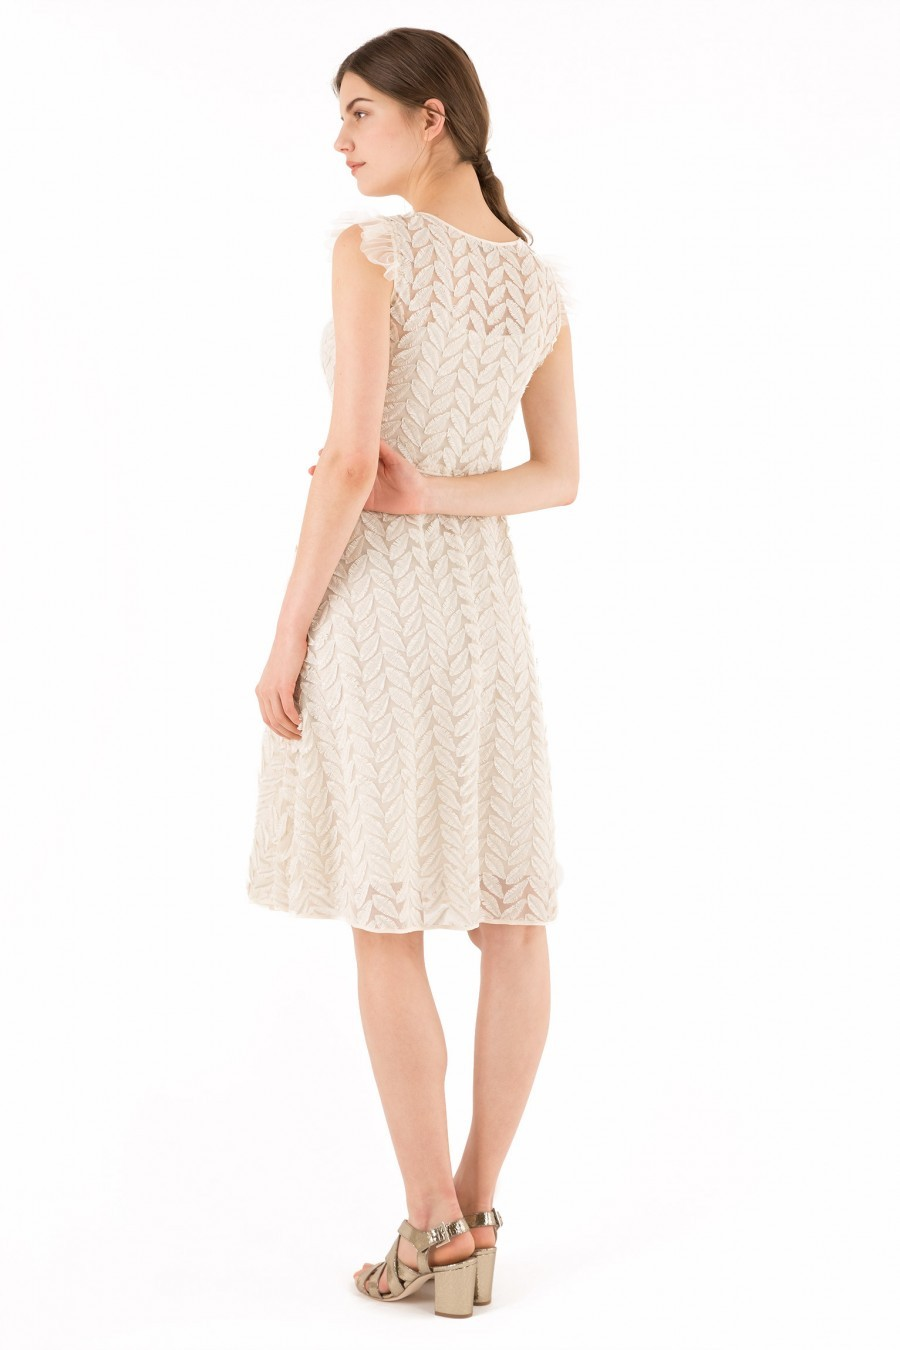 summer leaves dress Lazzari